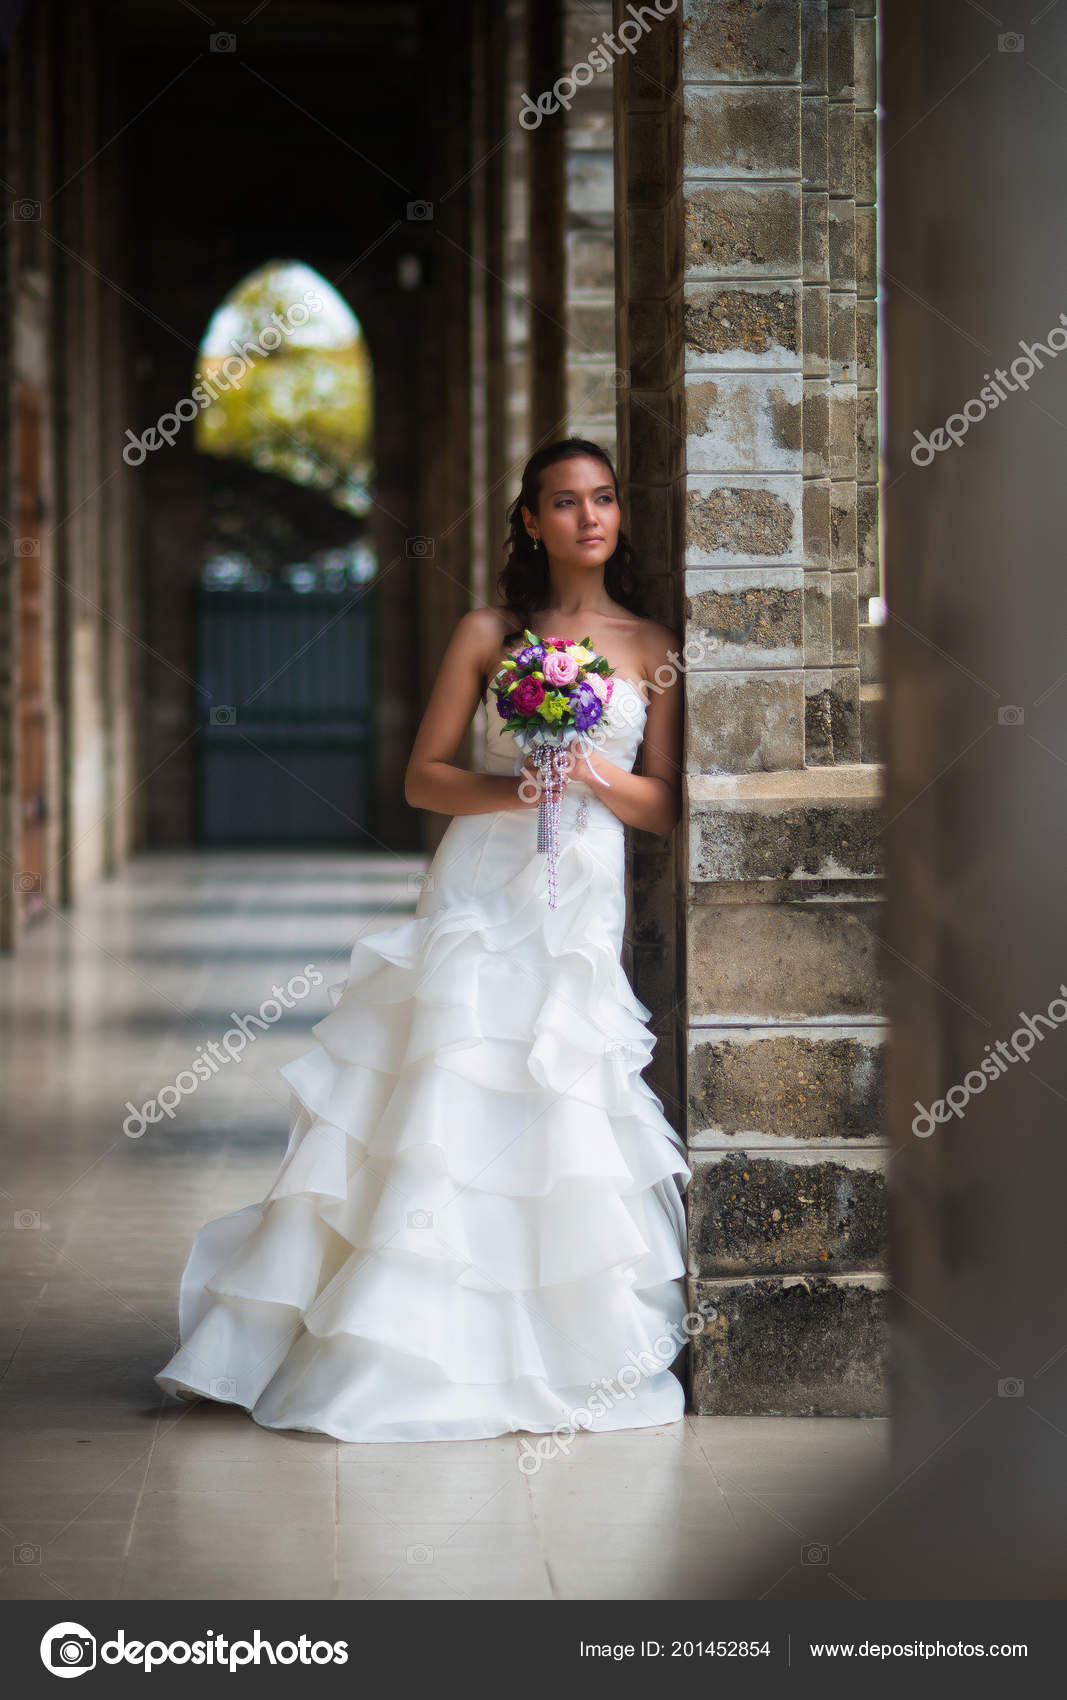 Bride Gallery Stone Walls Beautiful White Wedding Dress Bouquet Flowers Stock Photo: Beautiful Stone Wedding Dress At Websimilar.org